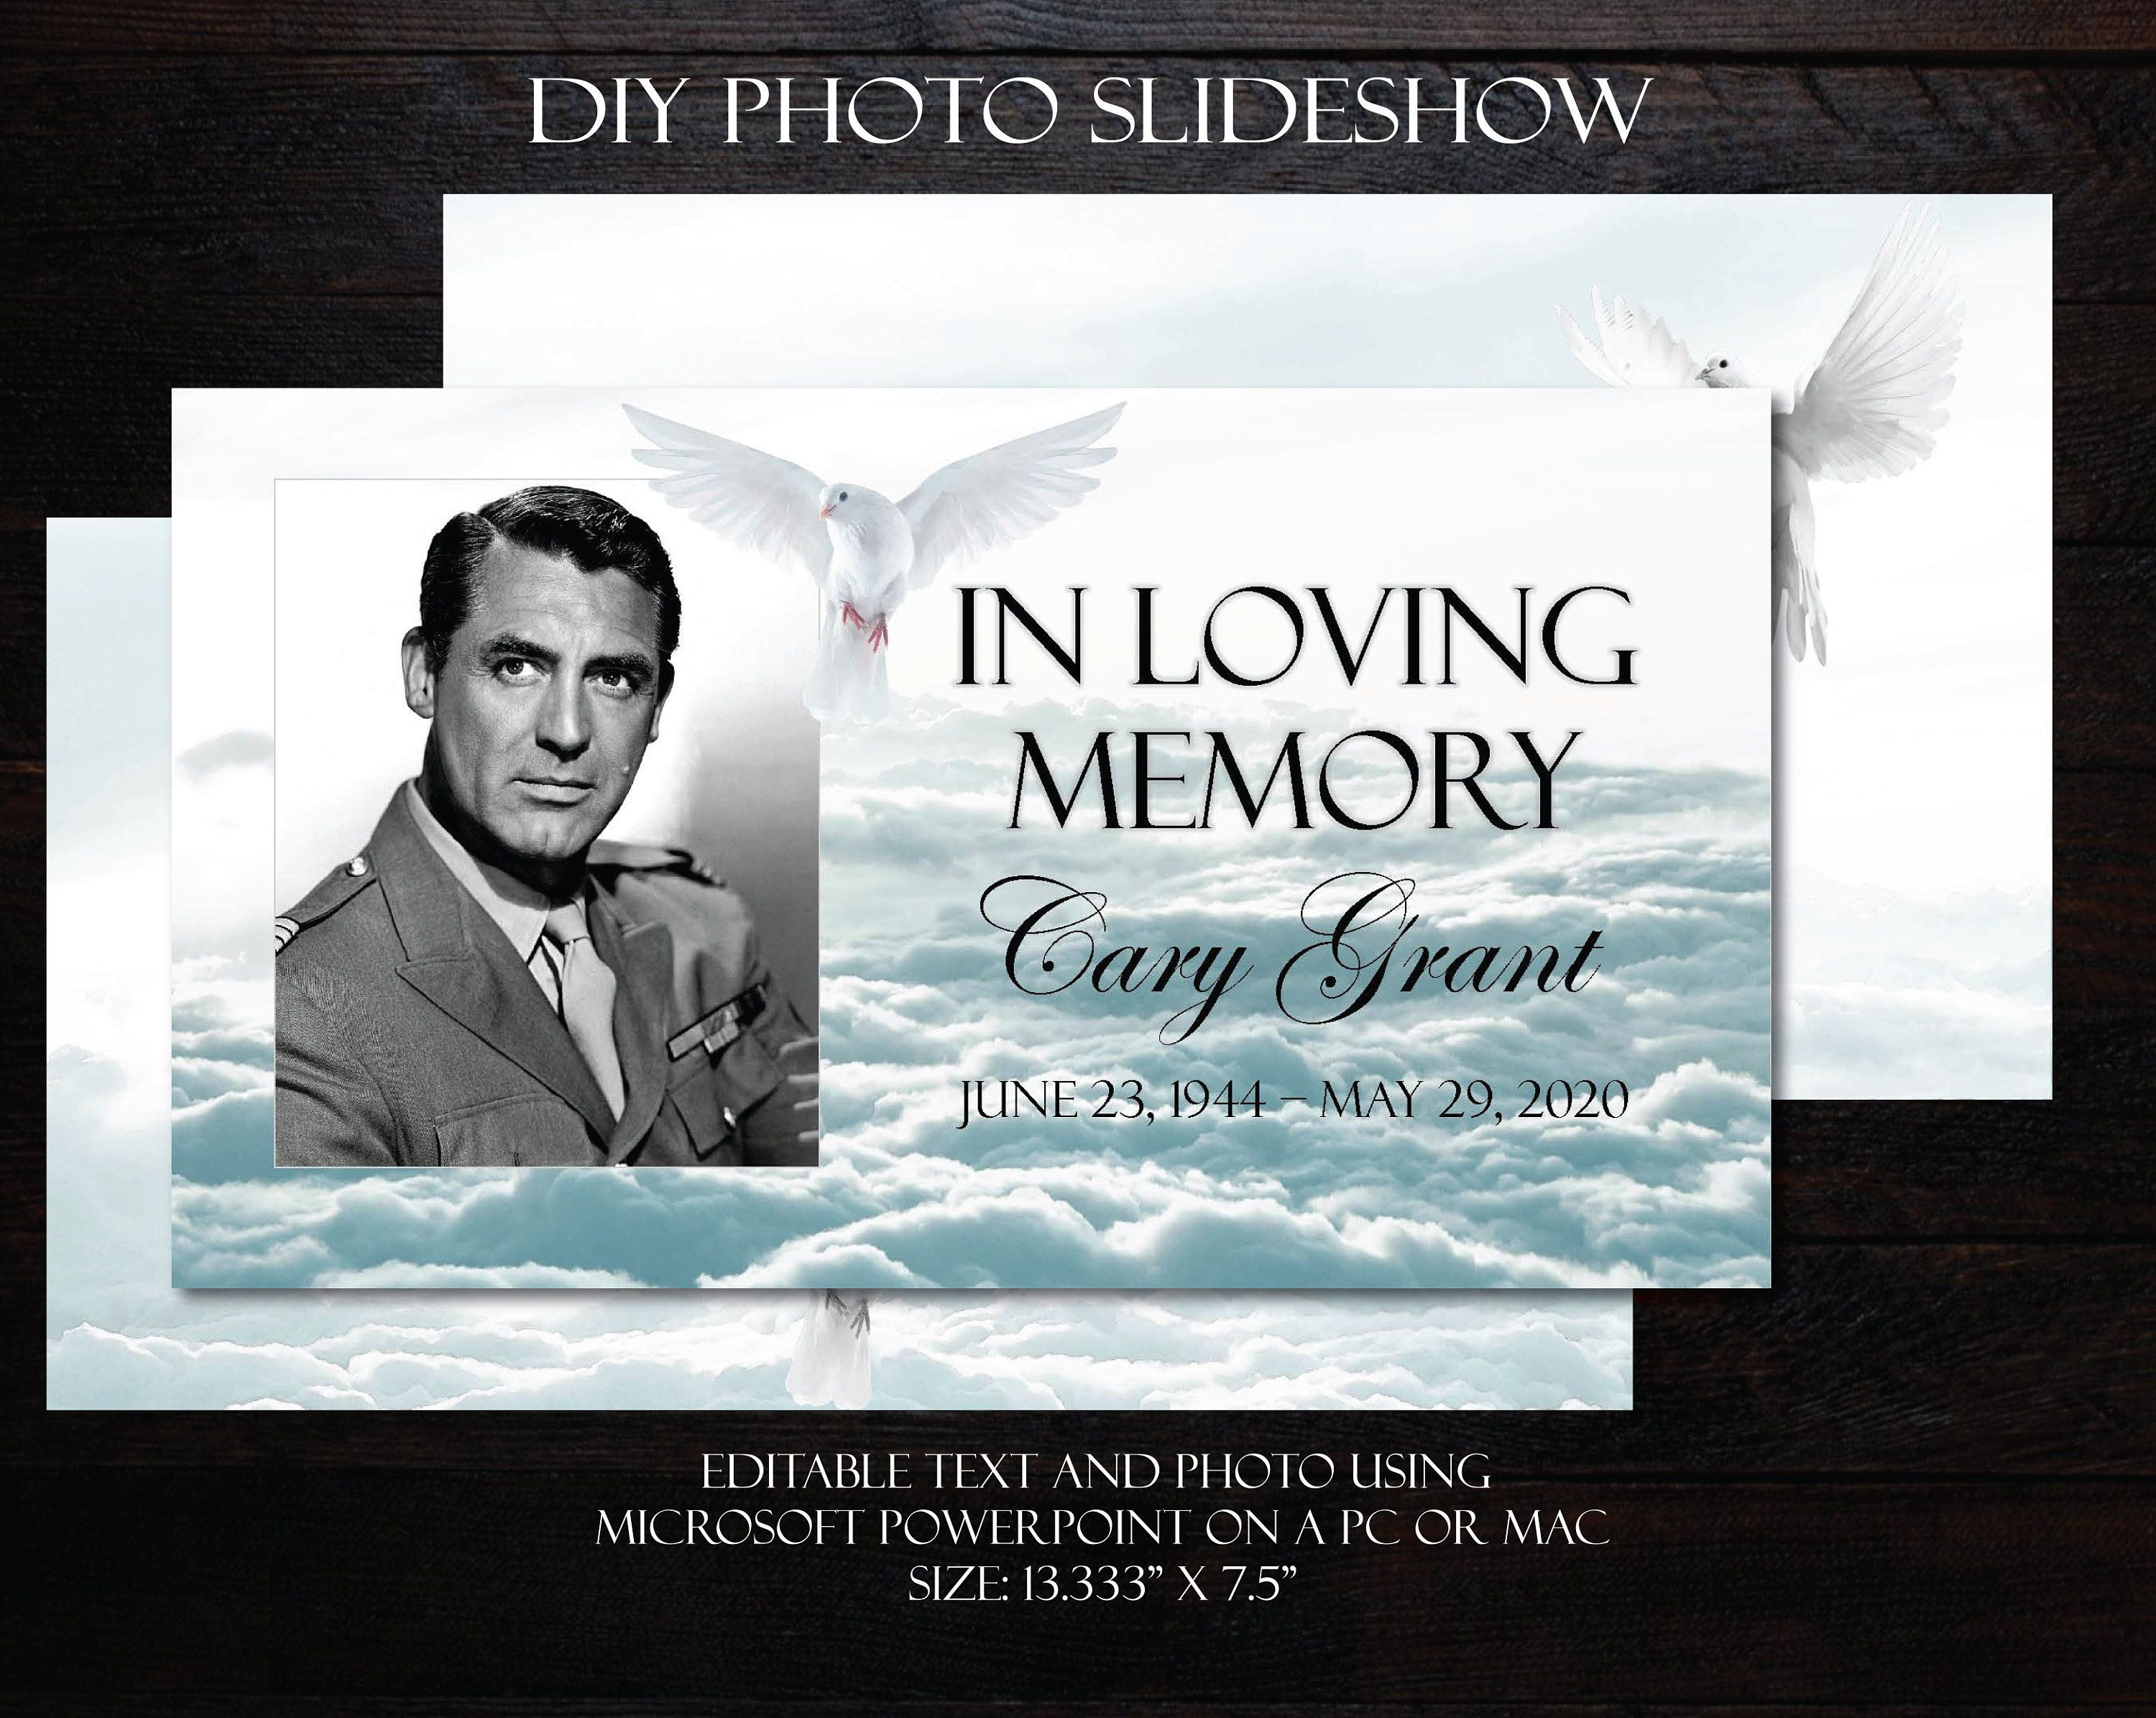 Diy Memorial Photo Slideshow Powerpoint Clouds Dove Male Etsy Photo Slideshow Funeral Program Template Funeral Templates In loving memory powerpoint template